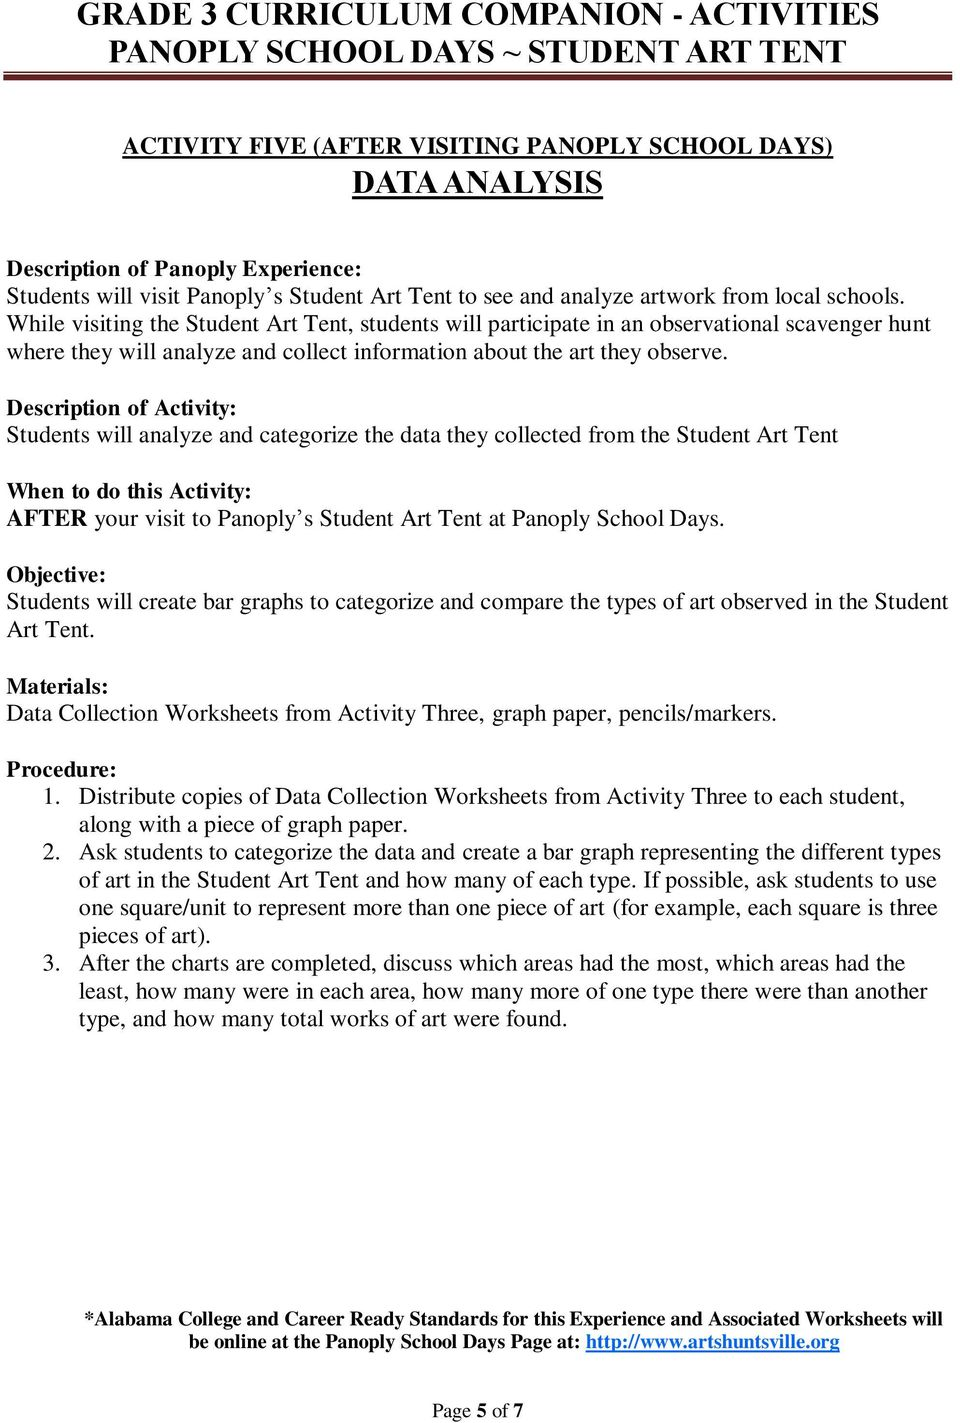 Data Collection Worksheets from Activity Three, graph paper, pencils/markers. 1. Distribute copies of Data Collection Worksheets from Activity Three to each student, along with a piece of graph paper.